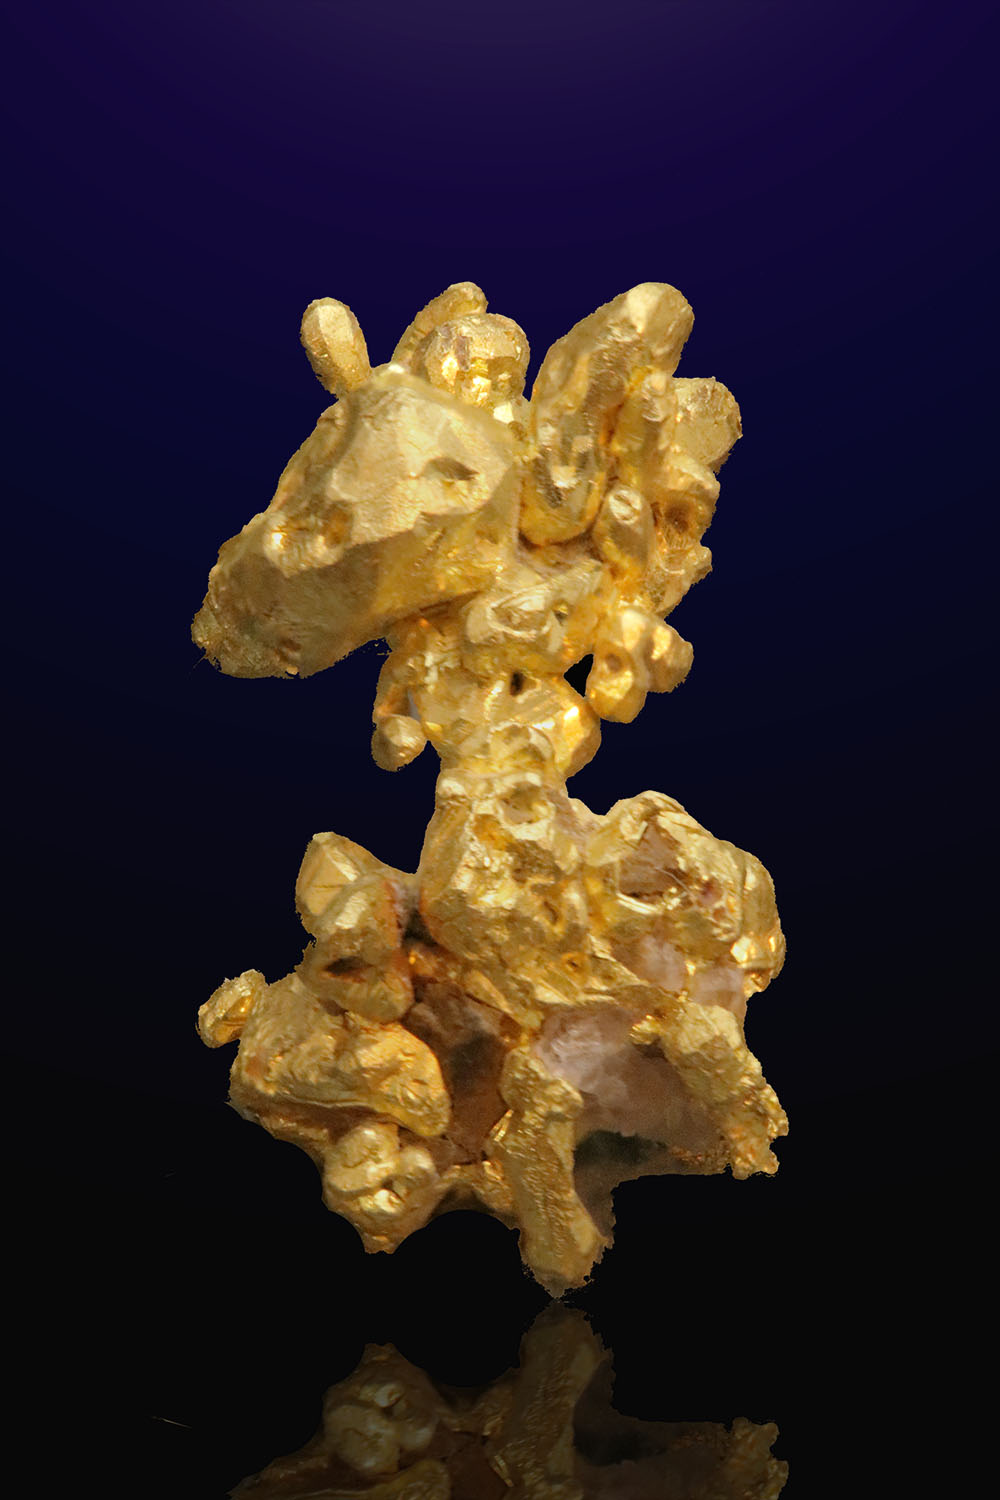 Colorado Quartz Mine, Mariposa County - Gold Crystal